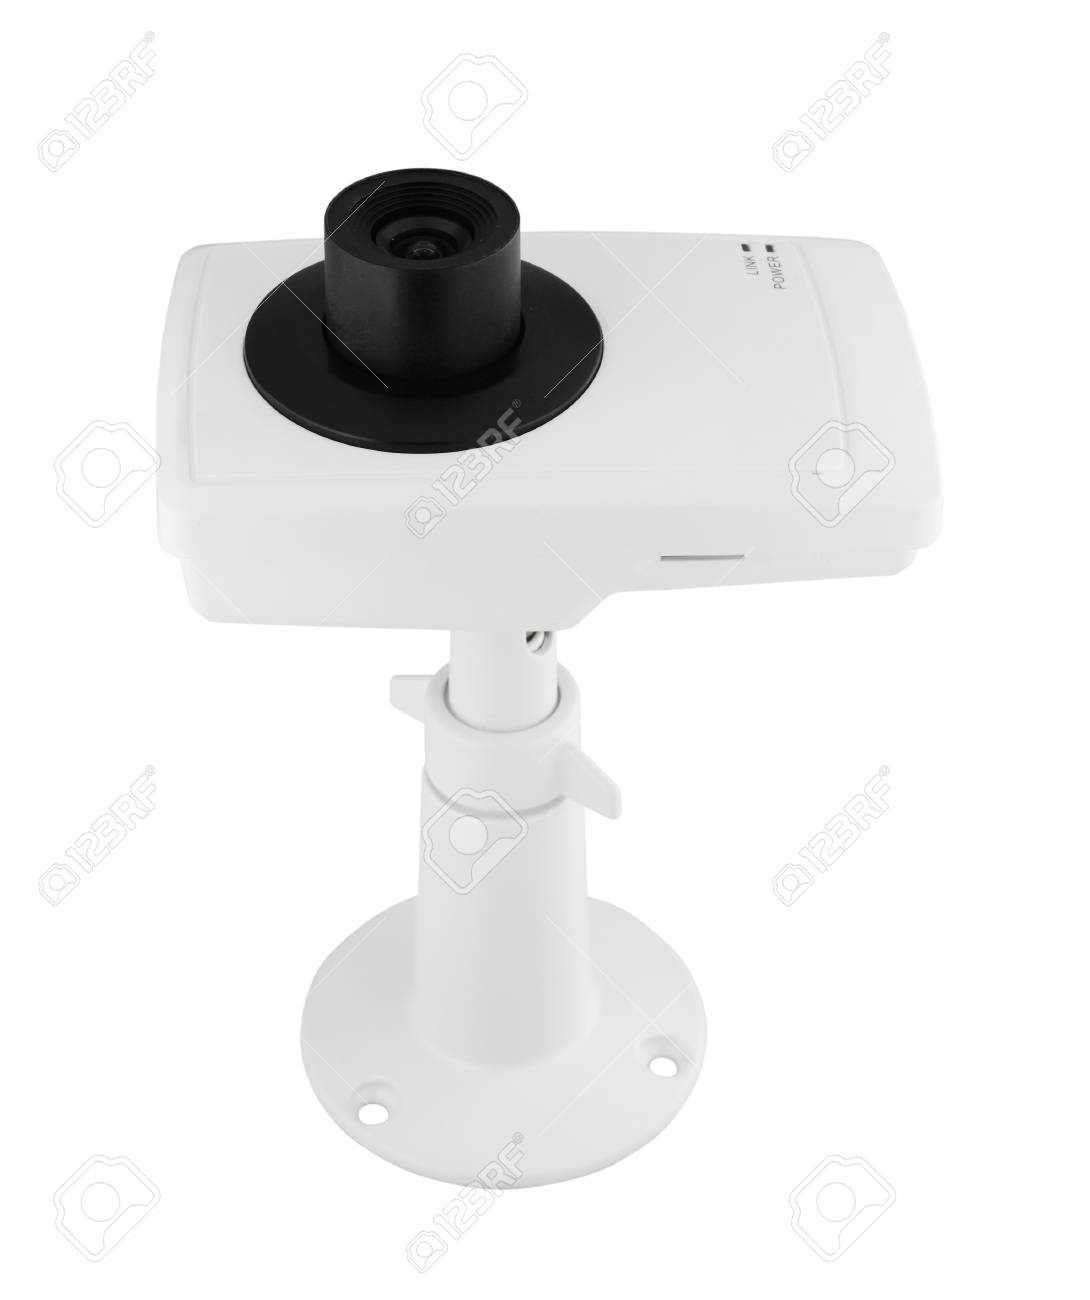 security camera on white background Stock Photo - 20446201